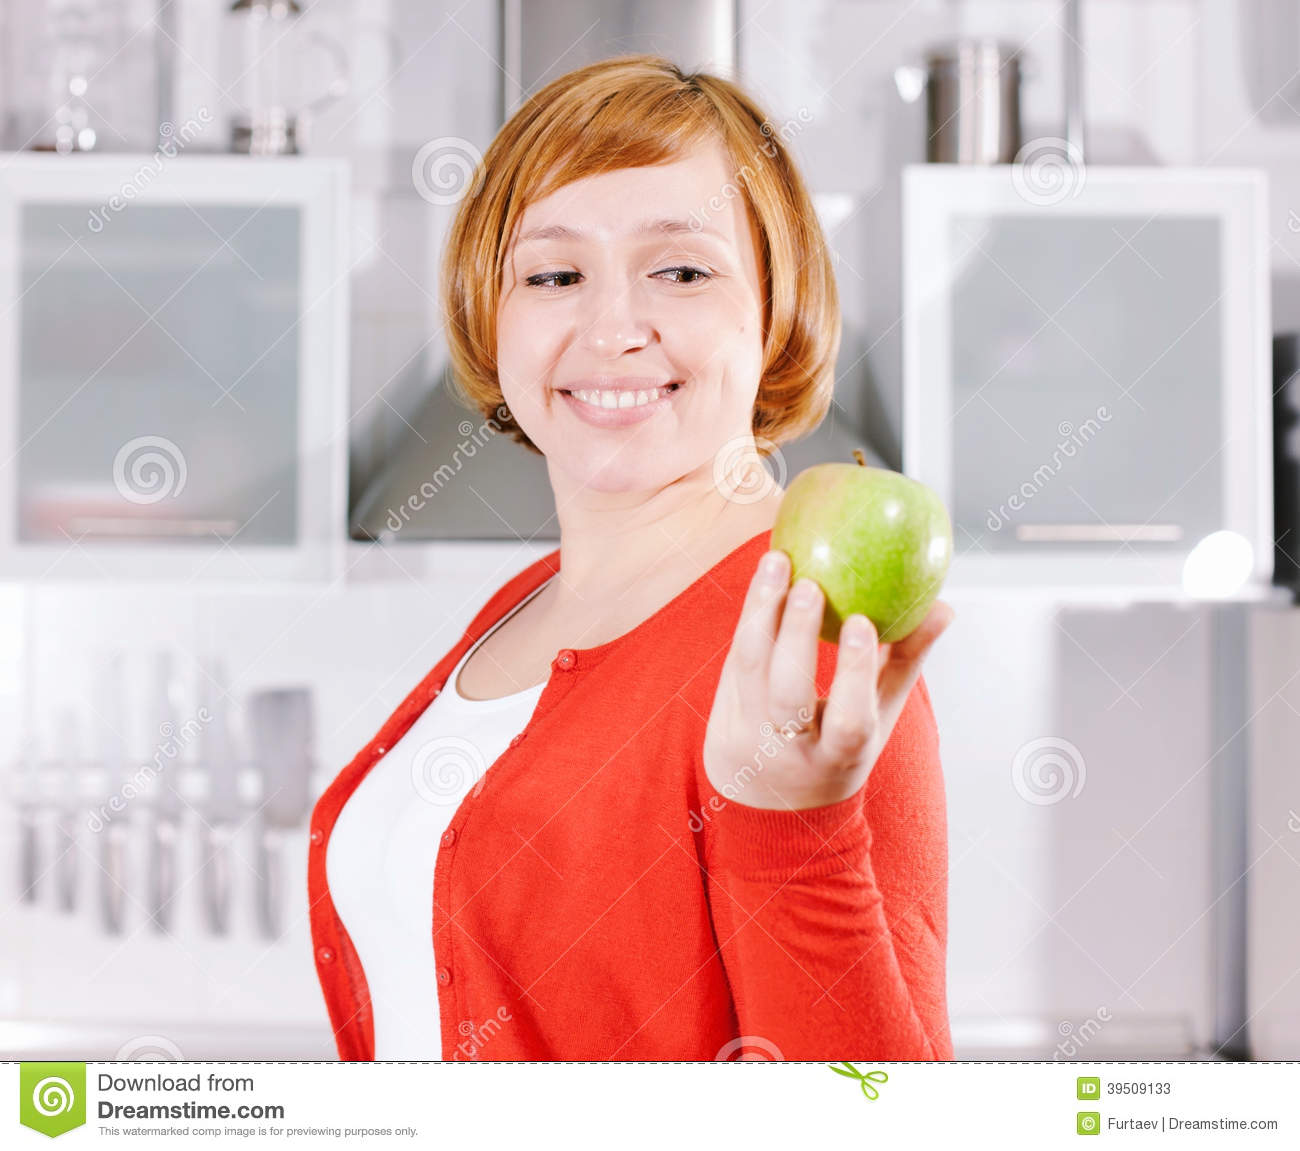 Redhead housewife with apple in kitchen